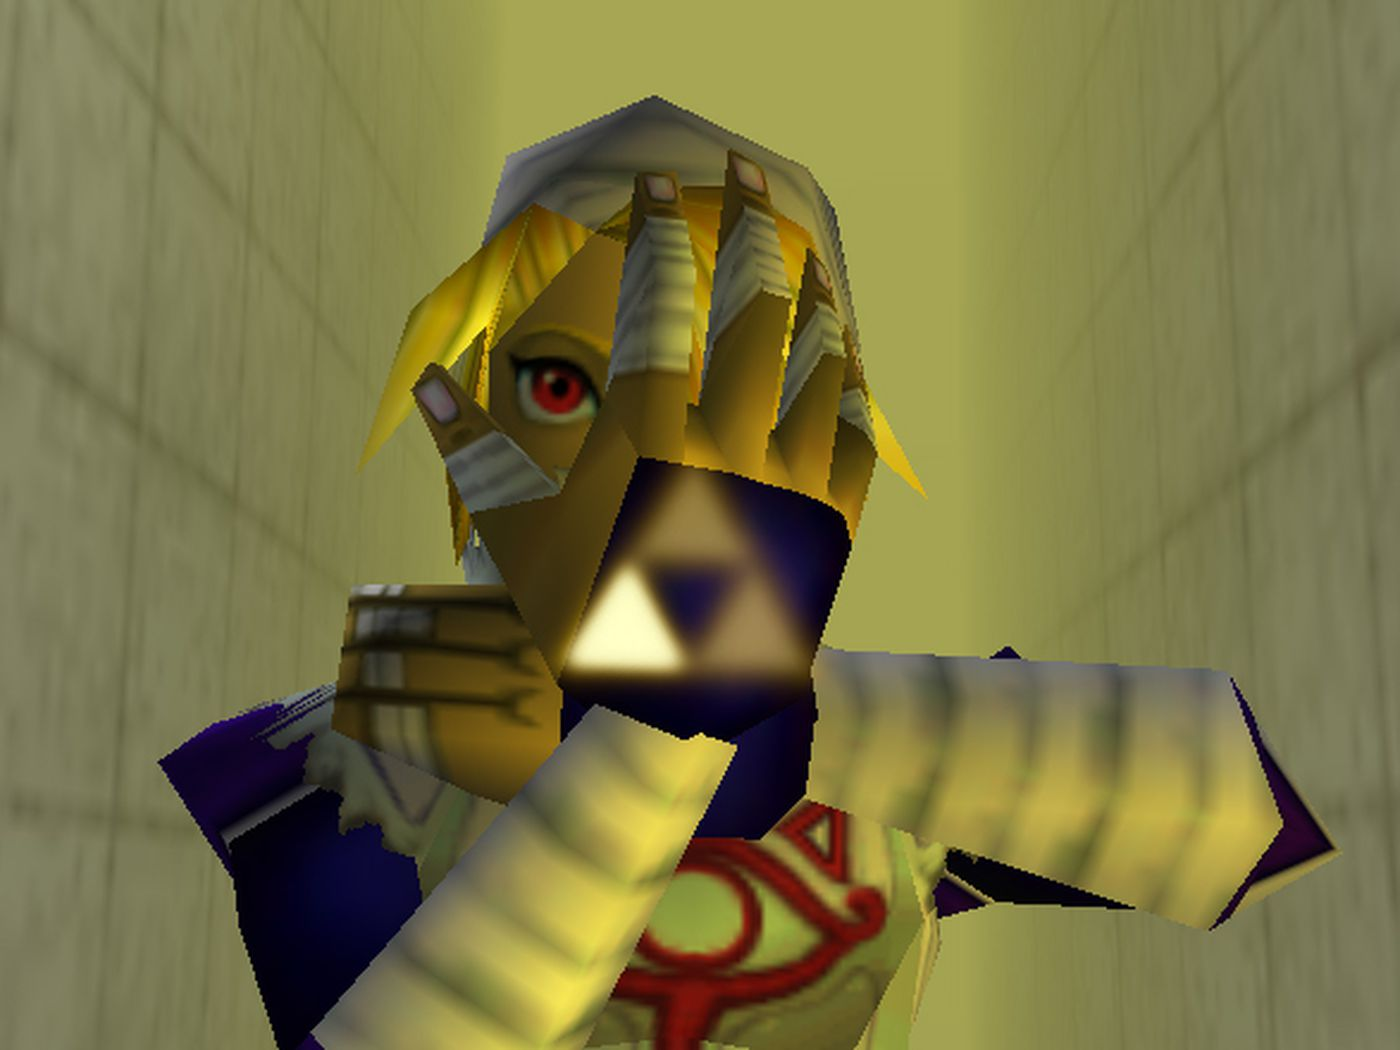 Zelda fans debate Sheik's gender, but here's Nintendo's